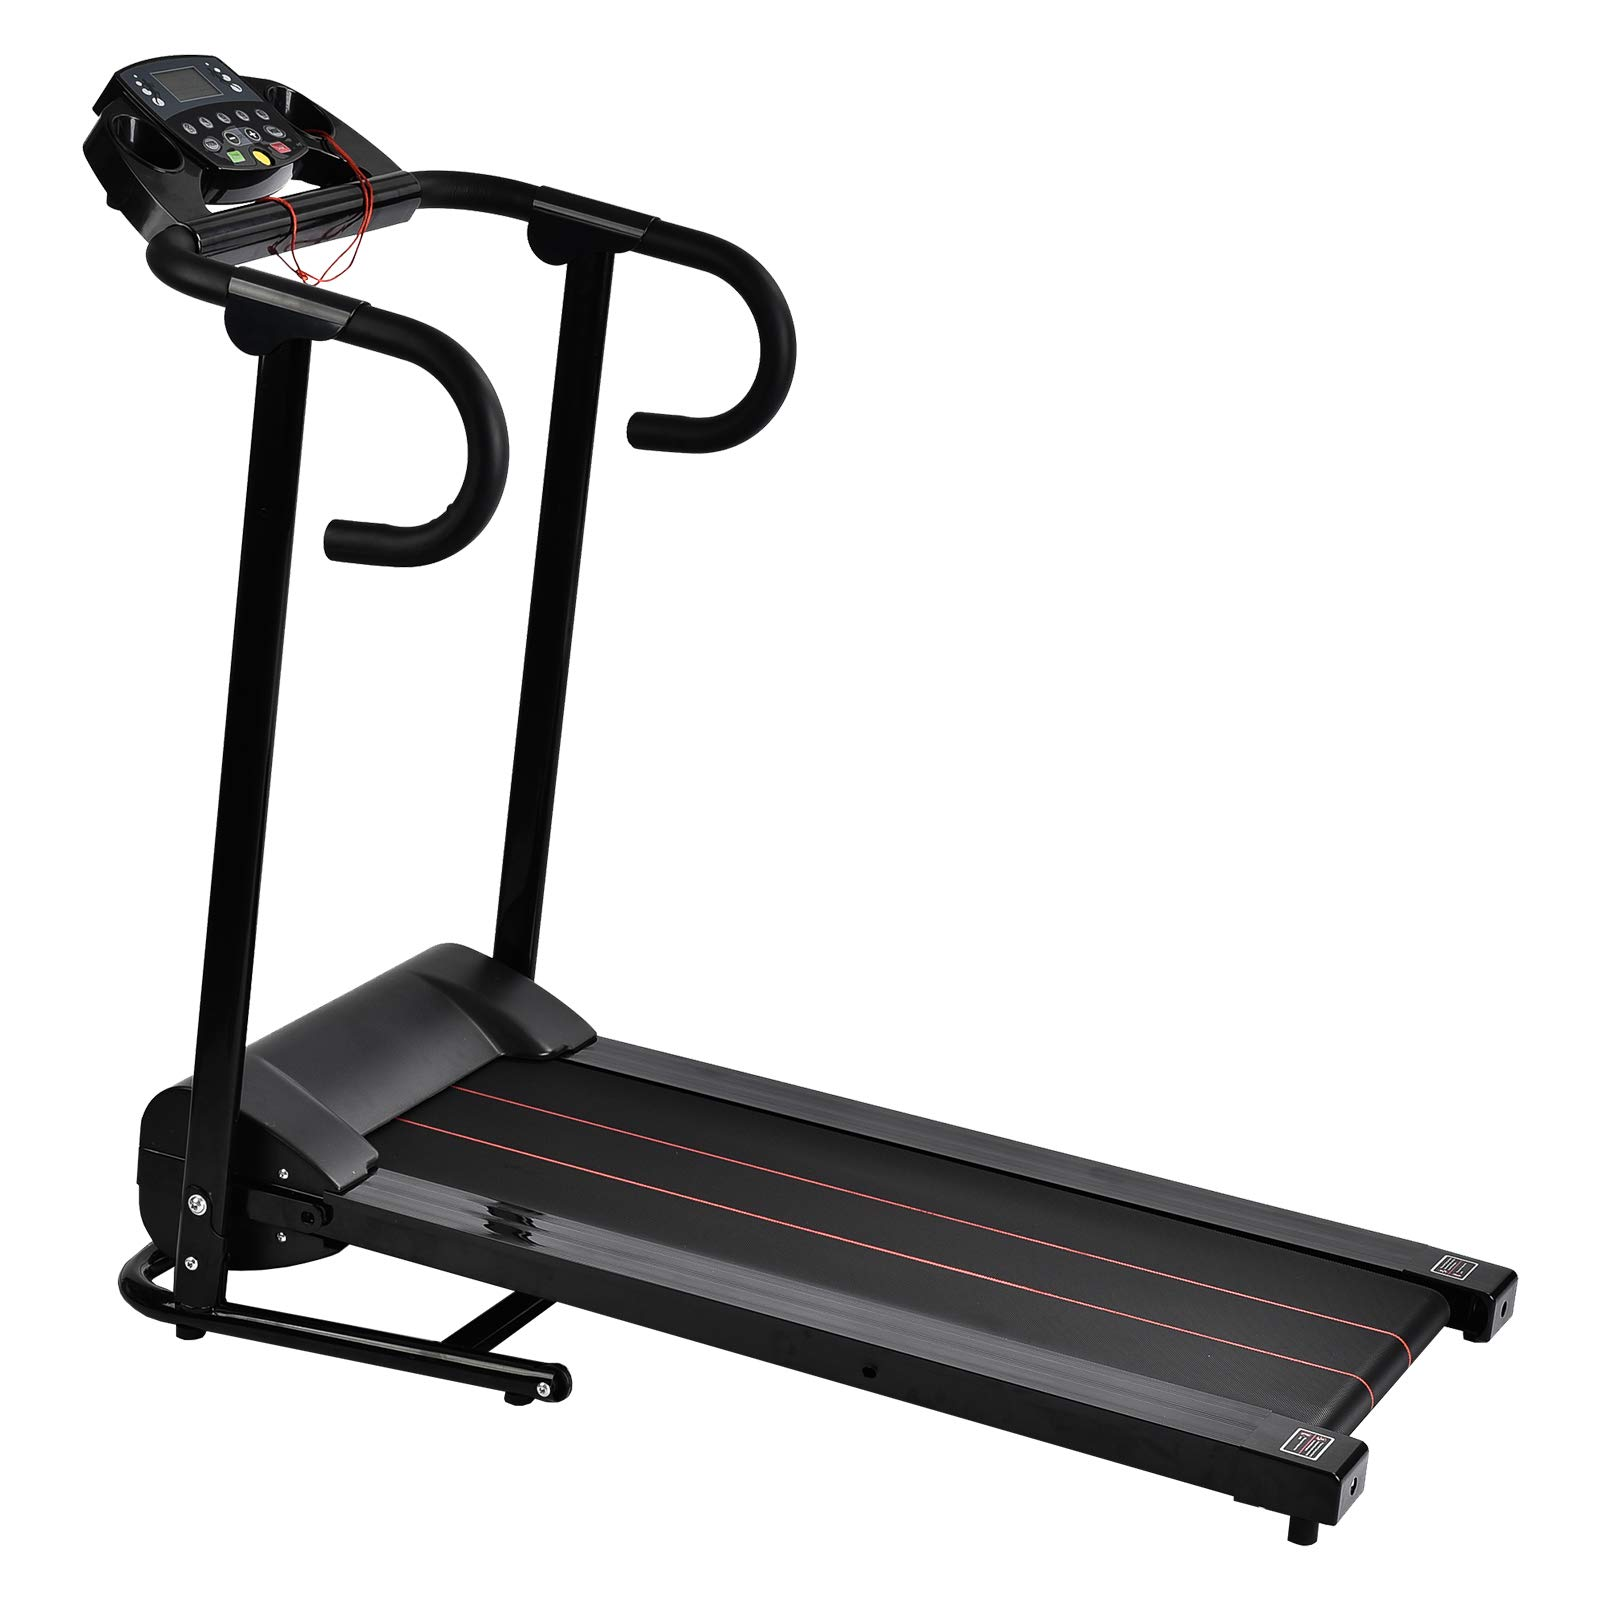 Murtisol 1100W Folding Treadmill Electric Walking Running Exercise Fitness Machine with LCD Display Easy Control Home Gym by Murtisol (Image #8)